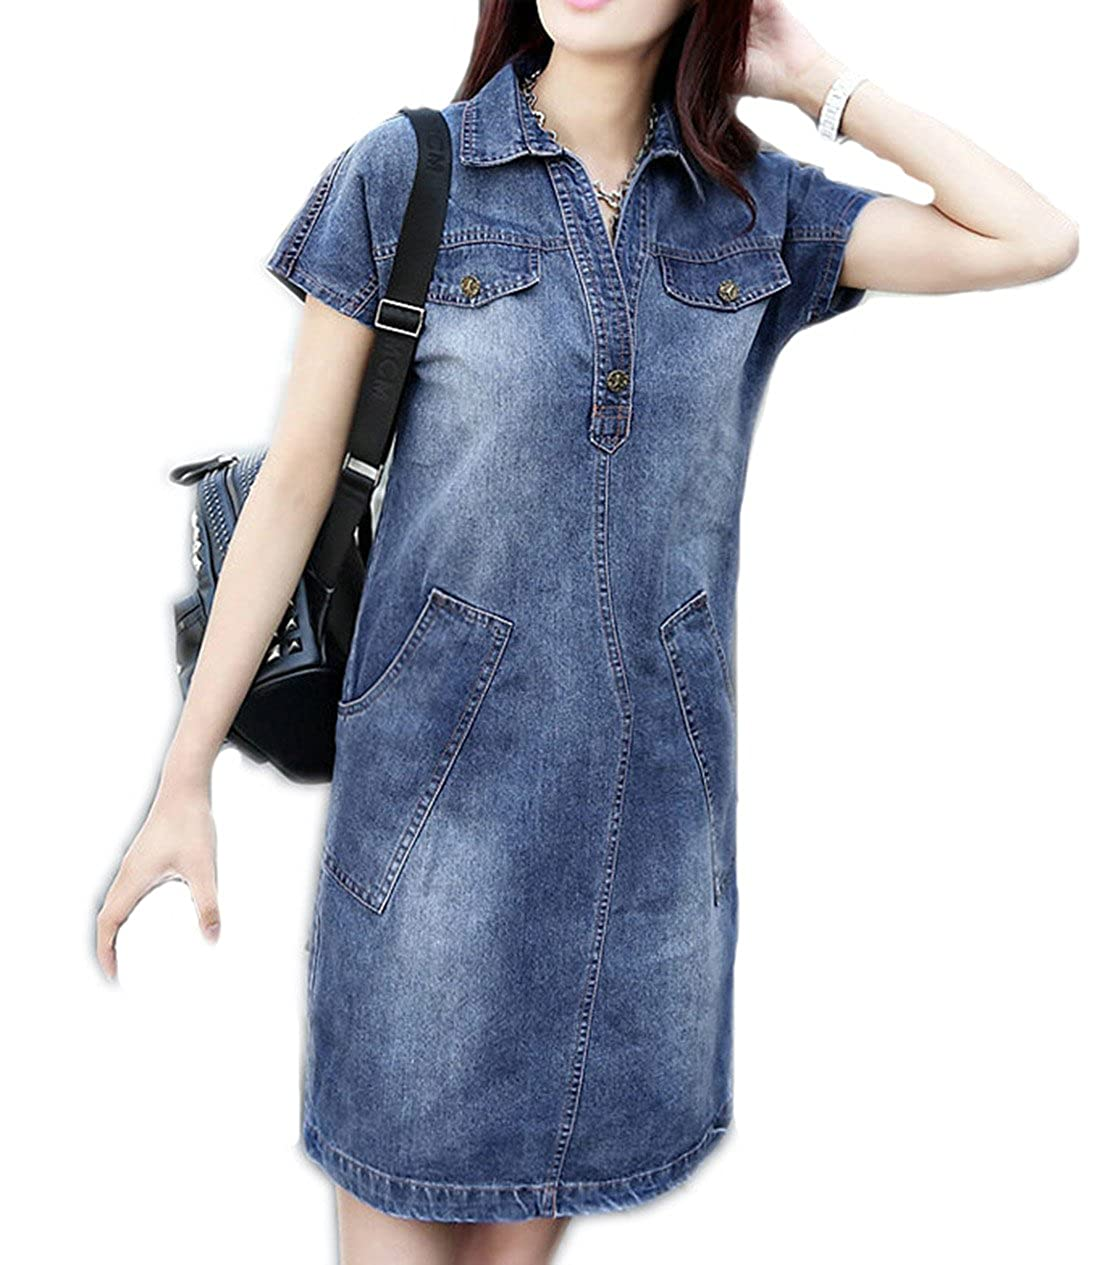 9198371a610 Women s Summer Denim Lapel Popover Shirt Dress Plus Size Casual Loose Jeans  Dresses with Pockets at Amazon Women s Clothing store